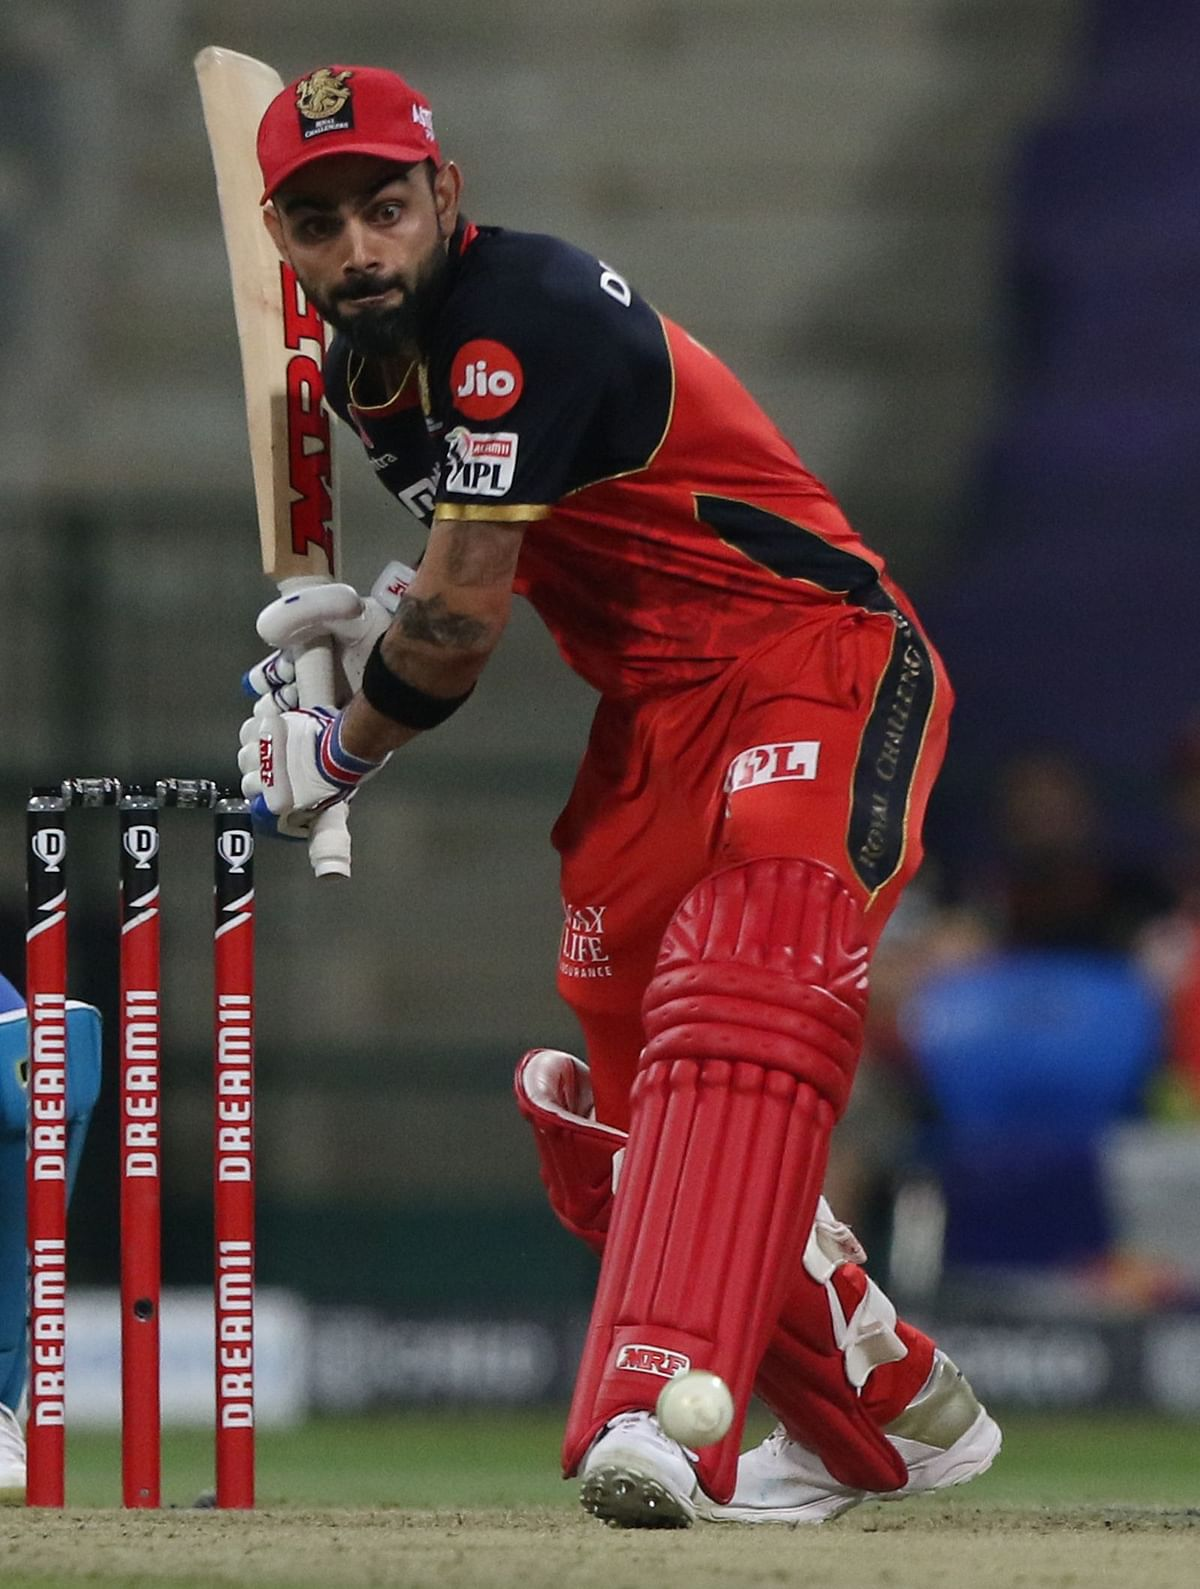 Virat Kohli, with a strike rate of 122, has stuggled to play aggressively and freely in the middle overs and against the spinners.